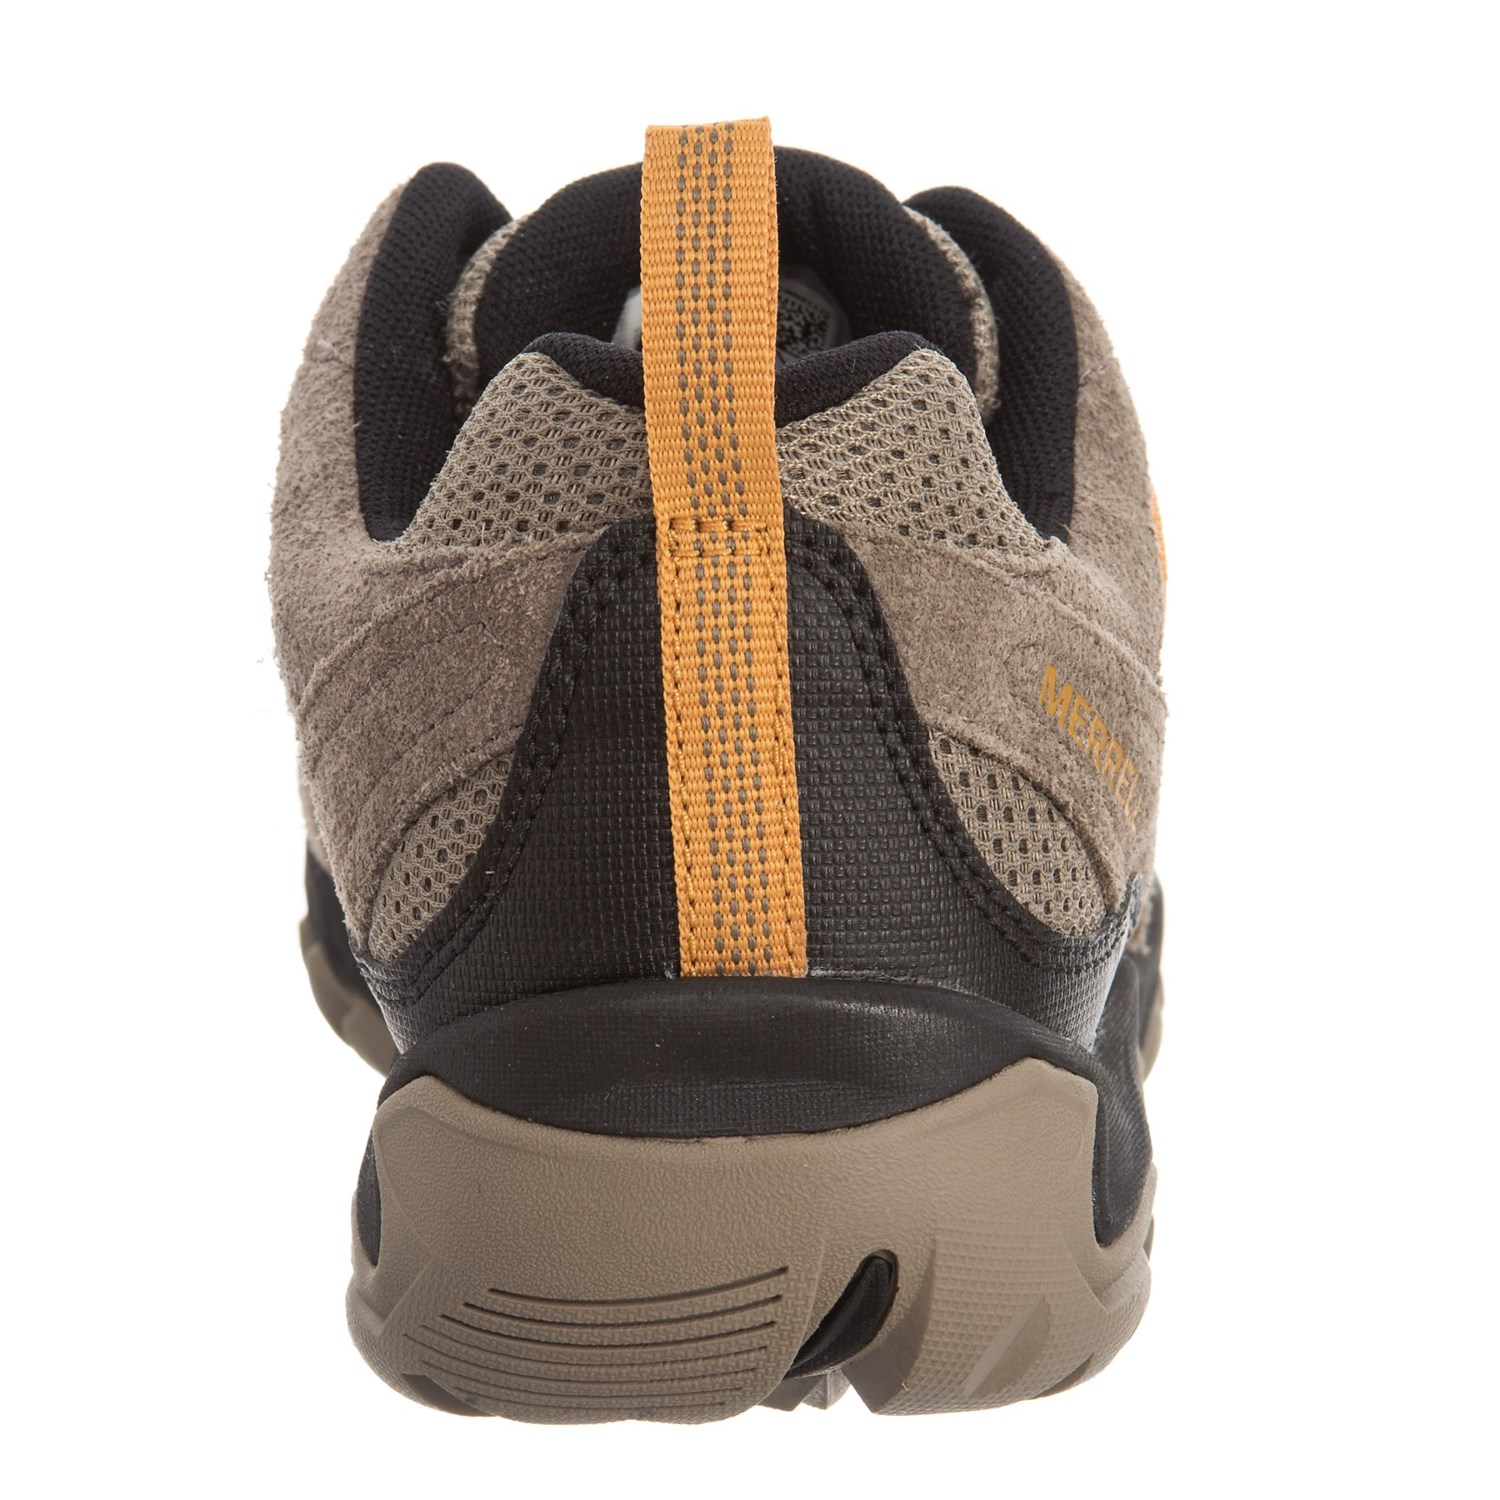 b8ec976225ad Merrell White Pine Vent Hiking Shoes (For Men) - Save 44%